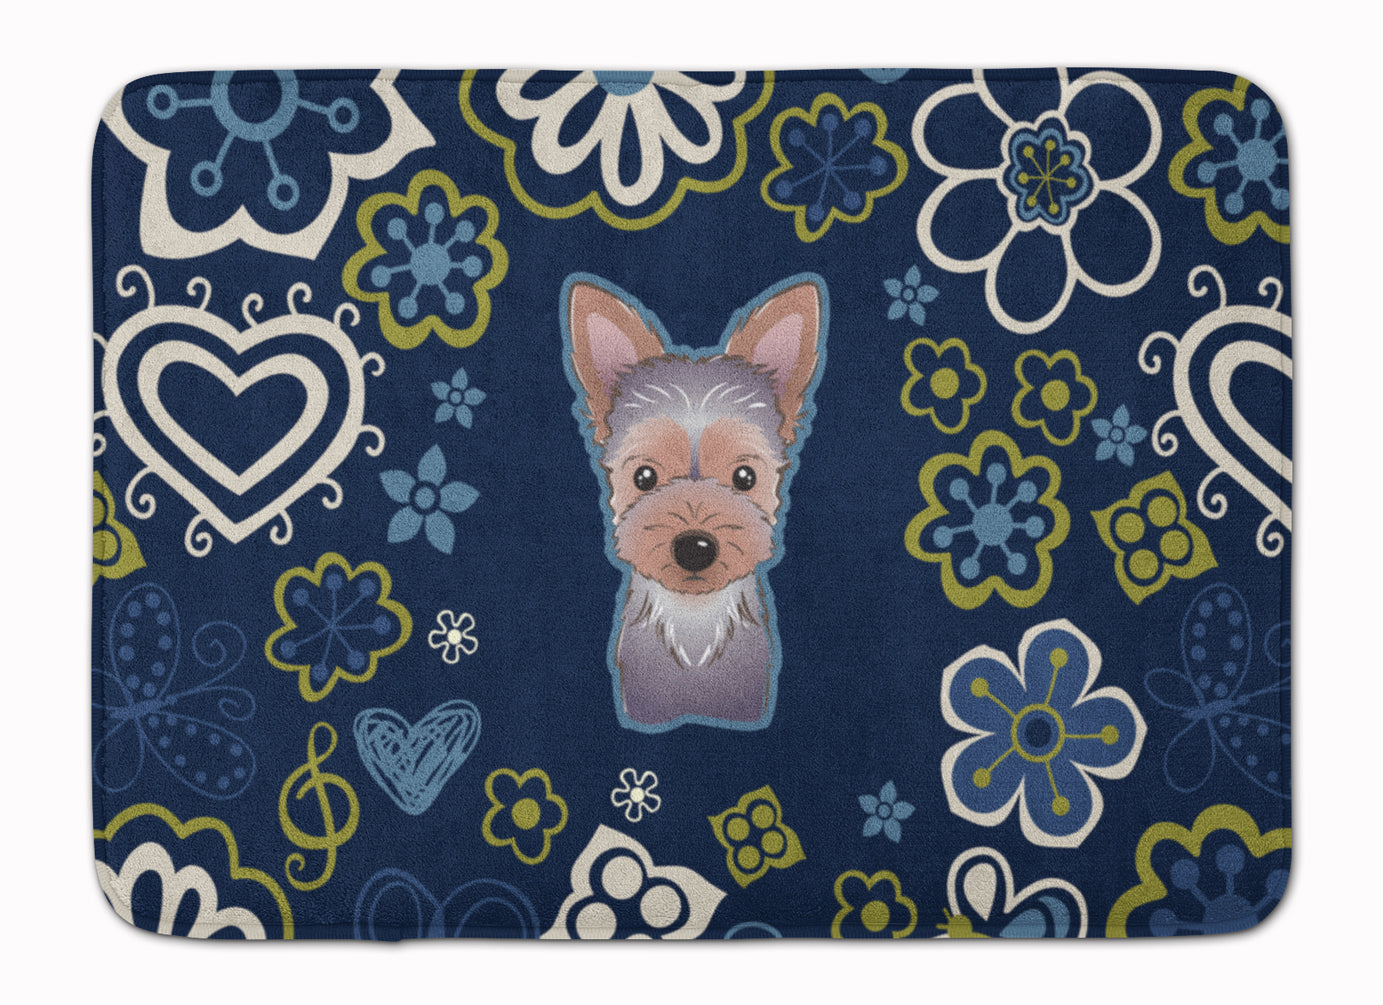 Blue Flowers Yorkie Puppy Machine Washable Memory Foam Mat BB5083RUG by Caroline's Treasures